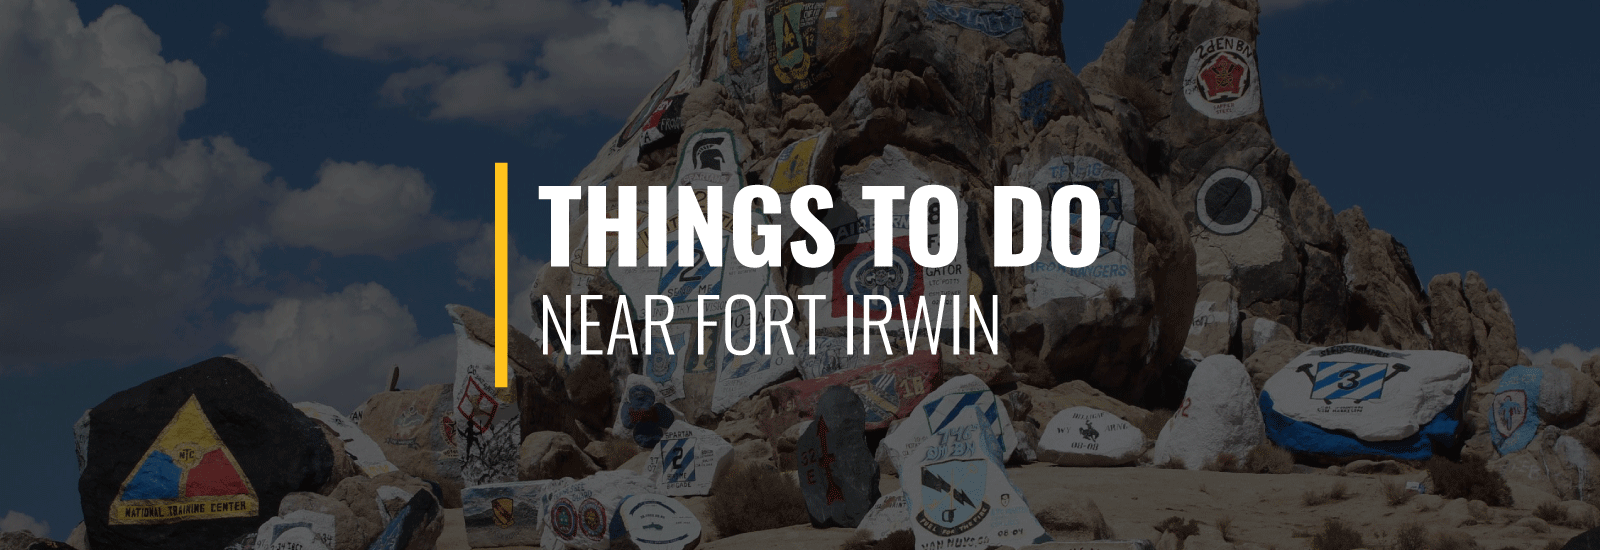 Fort Irwin Things to Do